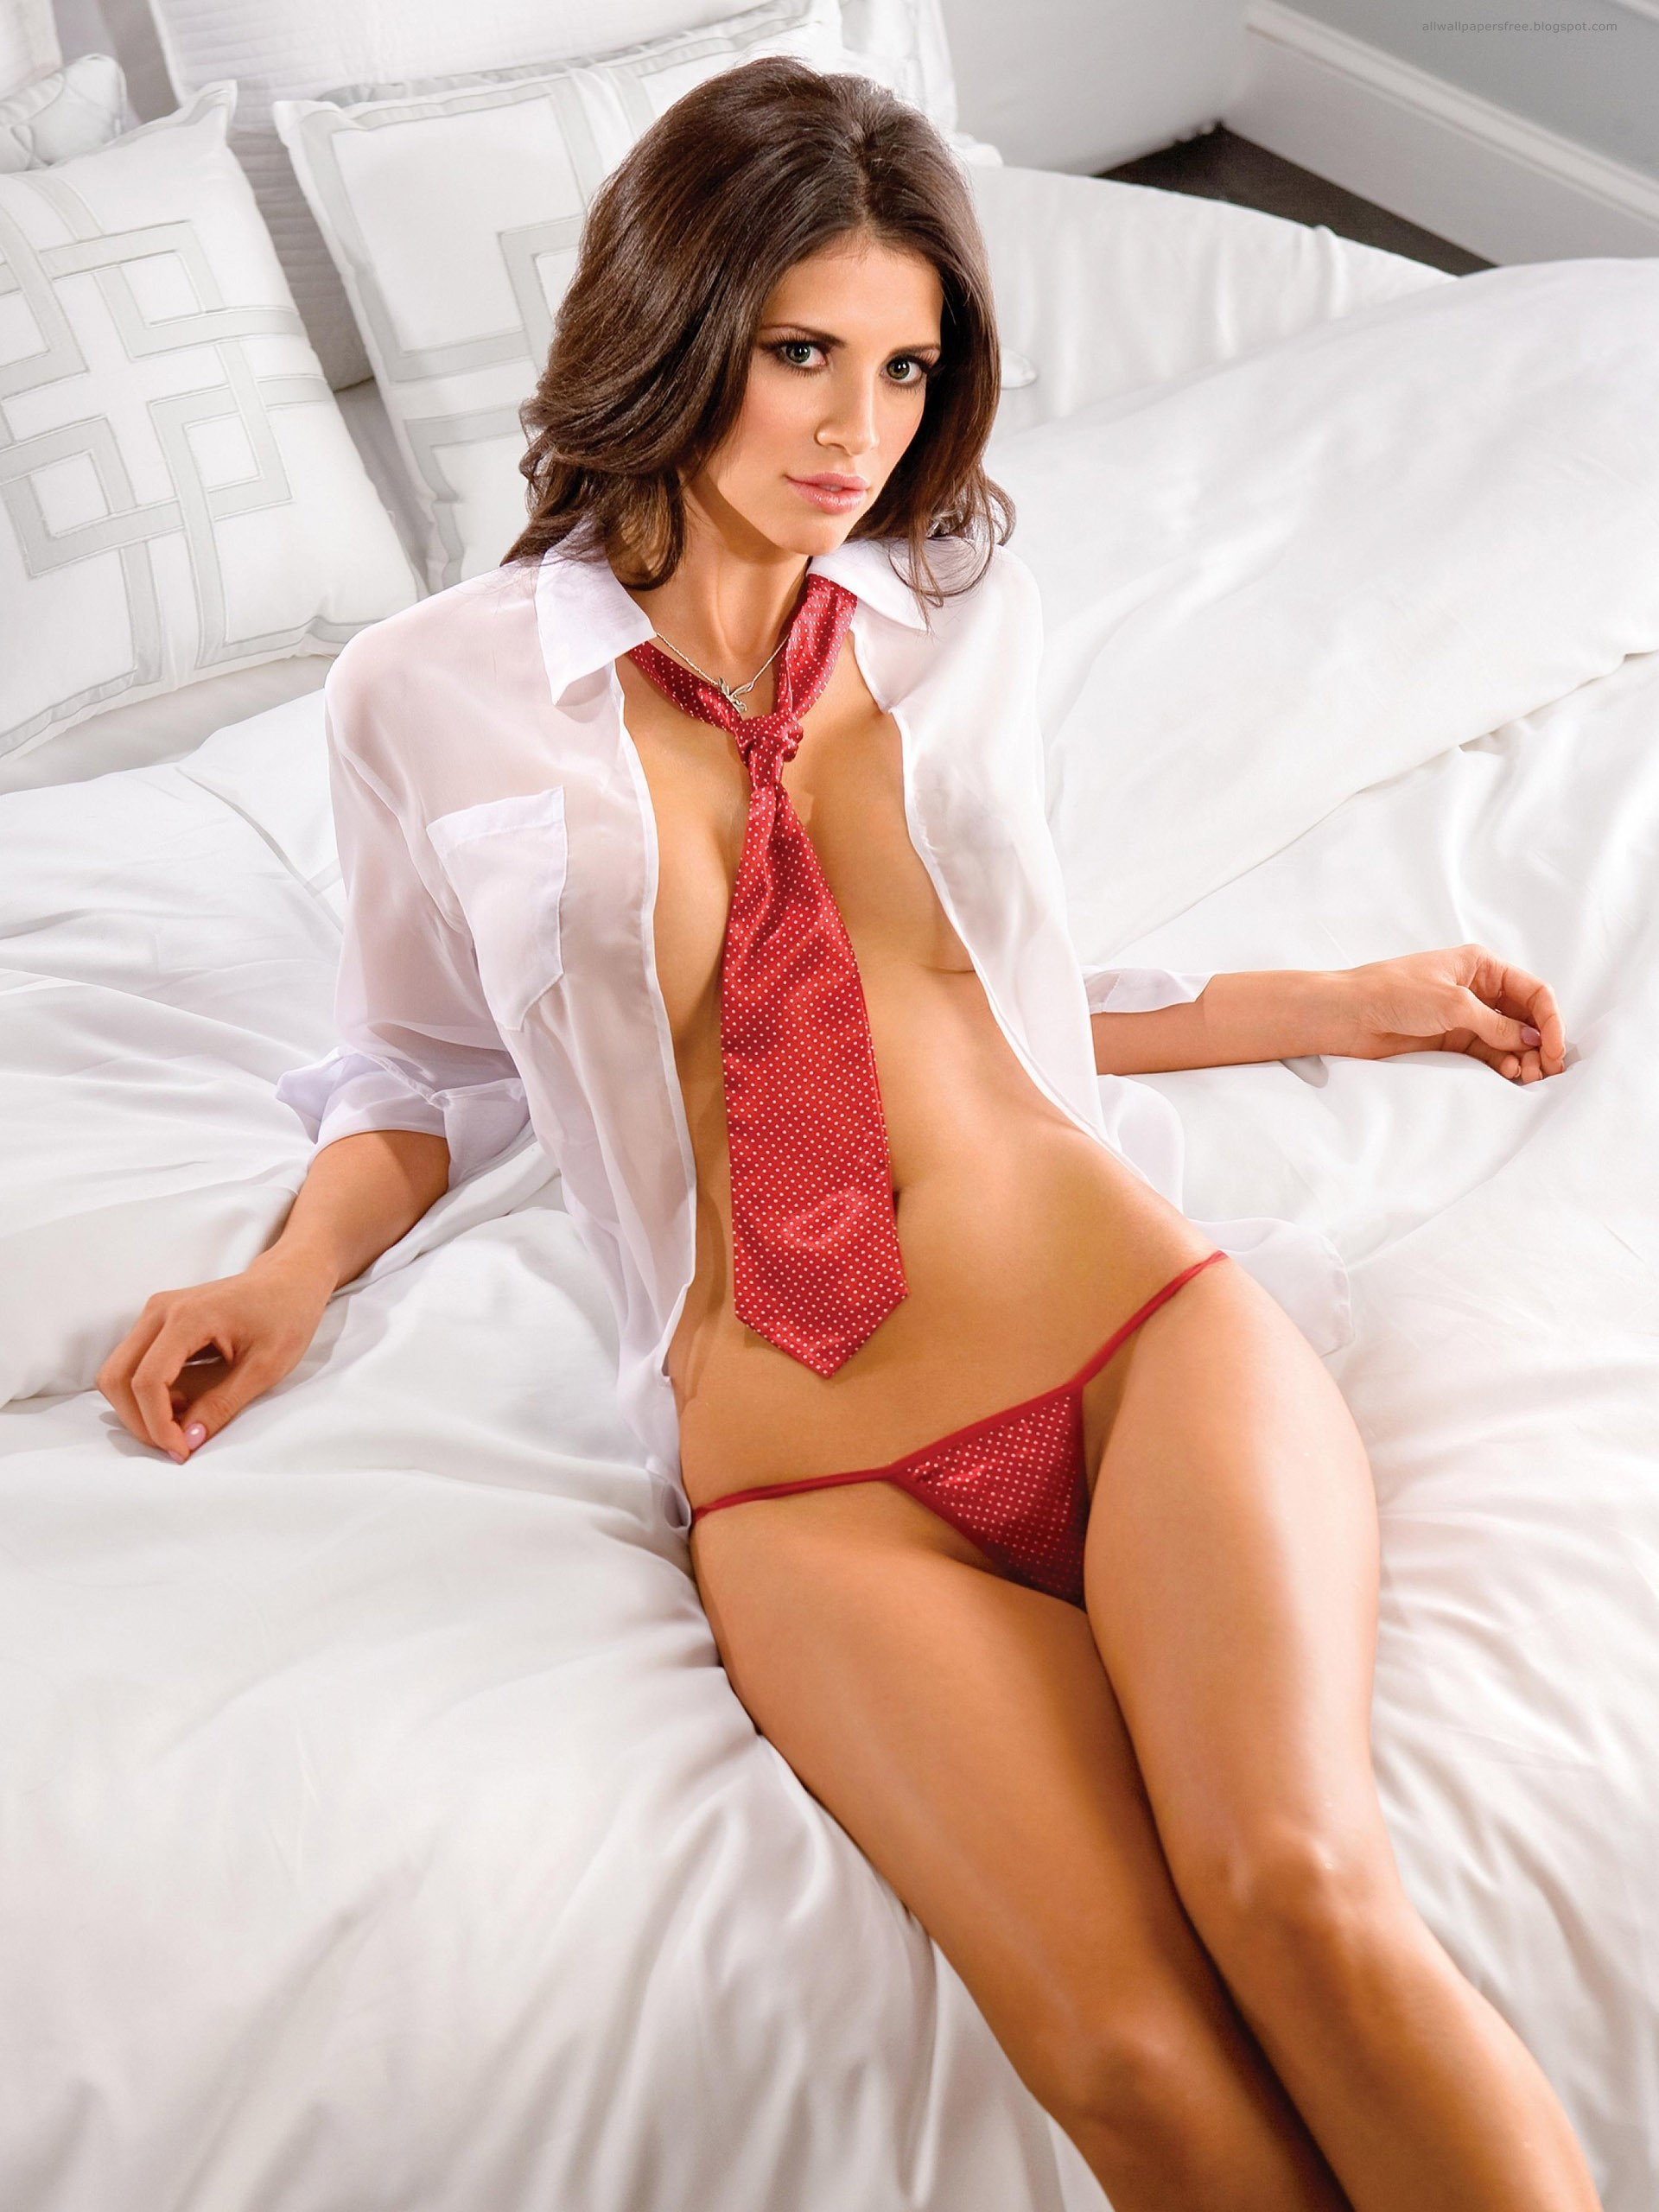 brunettes Women beds shirts HD Wallpaper